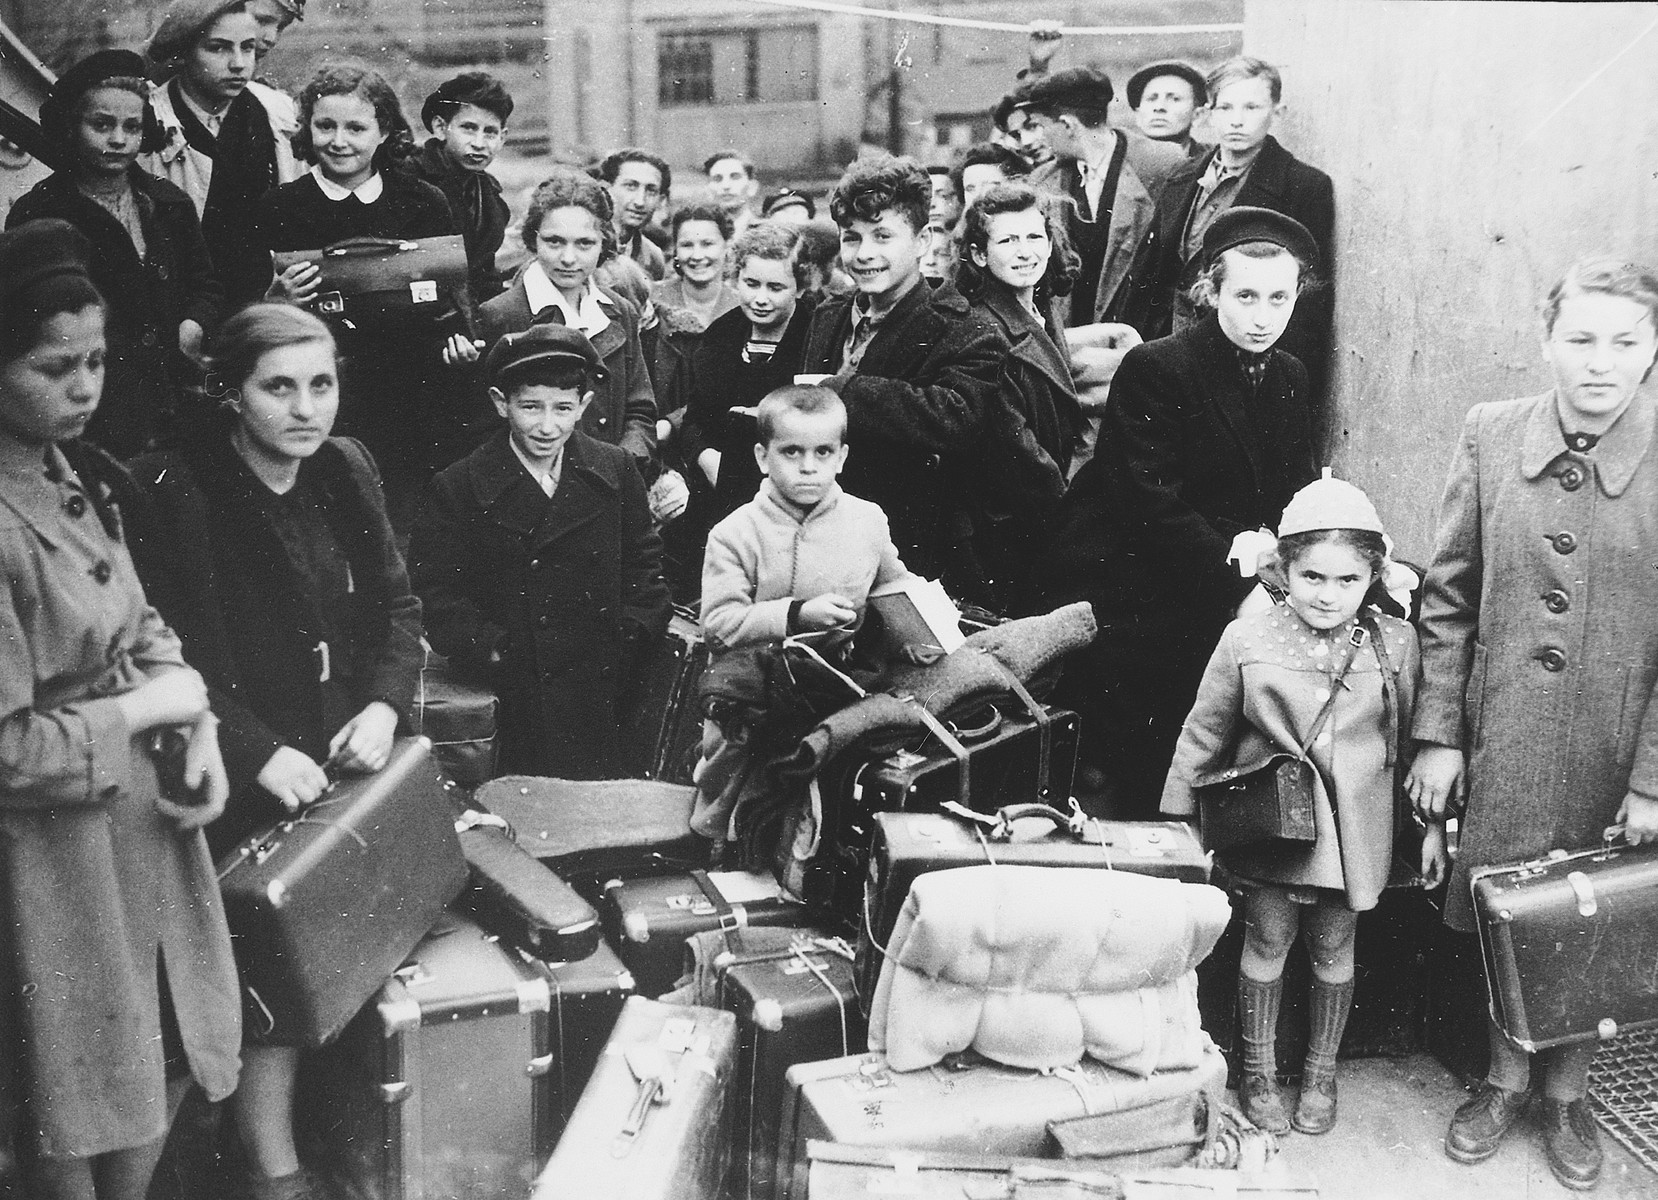 A group of child survivors arrives in Scotland by ship in a transport organized by Rabbi Solomon Schonfeld.  Approximately 200 children left on this transport organized with the support of the British Foreign Office.  Among those pictured are Elek Rebensztok (front center), Richard Vanger (directly behind Elek Rebensztok), Hannah Greenberg (top, third from left), and Jerzy Hoffman (top, fourth from left).